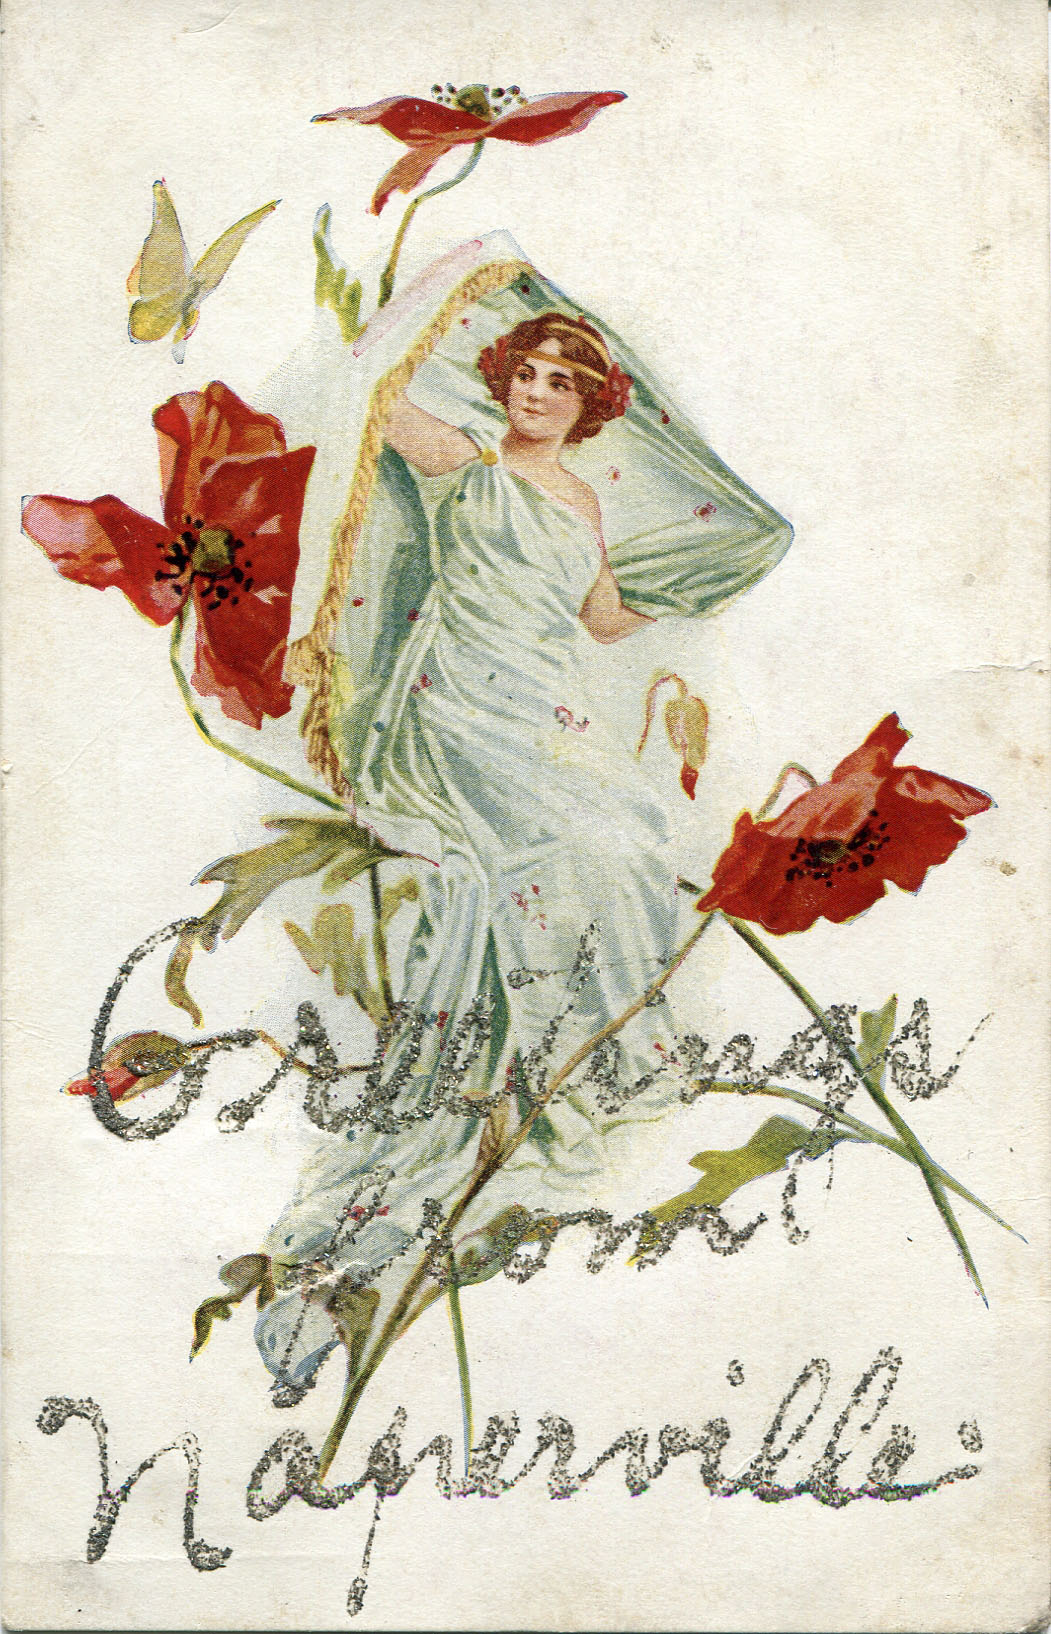 Postcard with illustration of woman and poppies